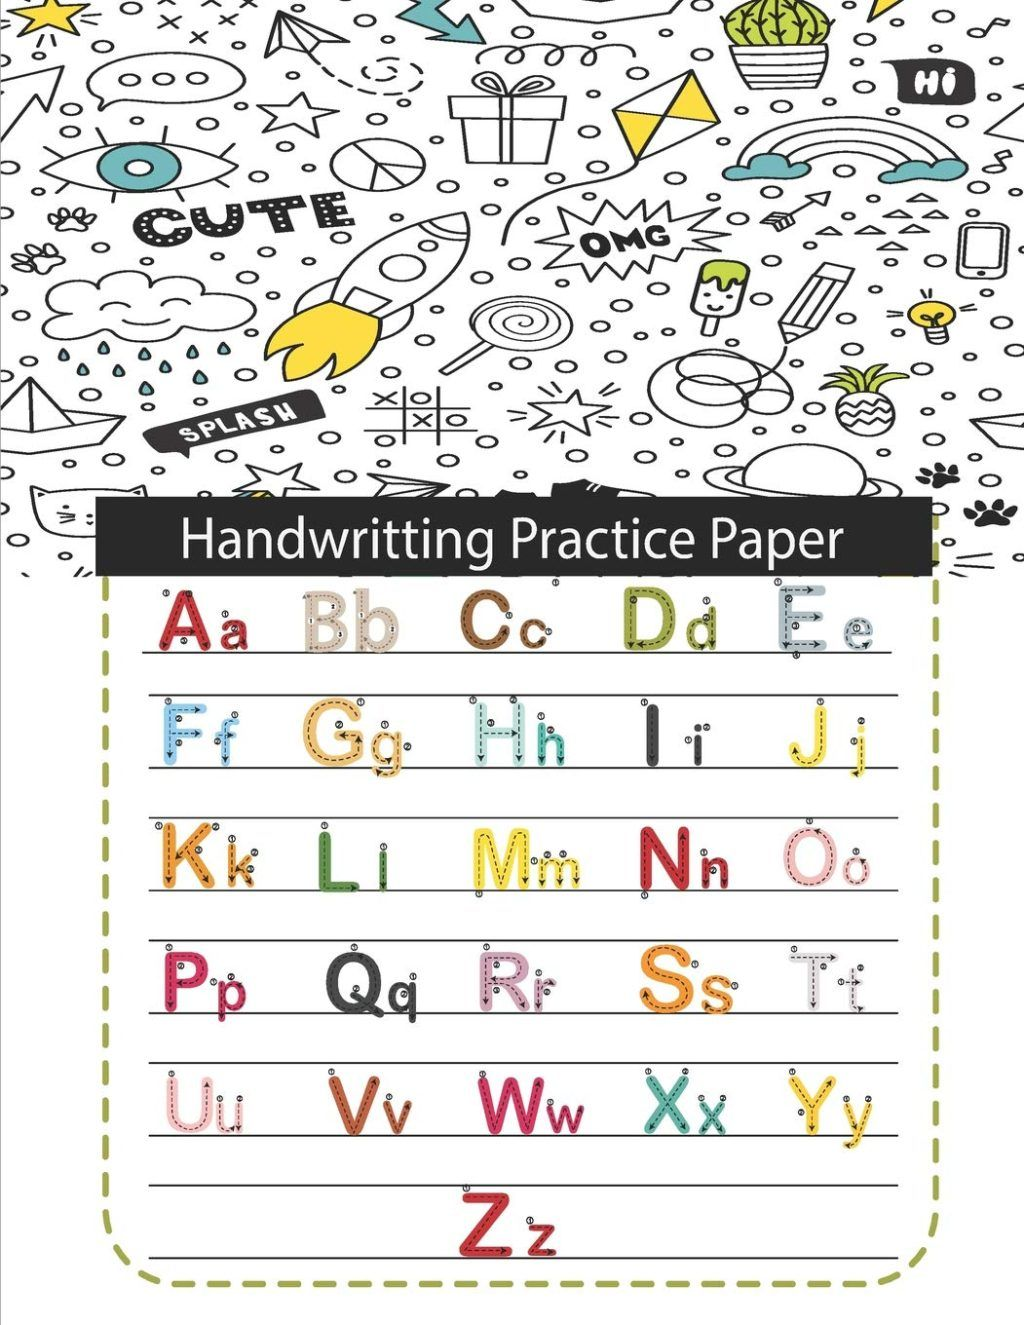 Https Bigmetalcoal Com Wp Content Uploads 2020 04 Free Printable Preschoolng Pages With Blank Space And Lines Worksheets For Kids Free Printables Worksheets [ 1325 x 1024 Pixel ]